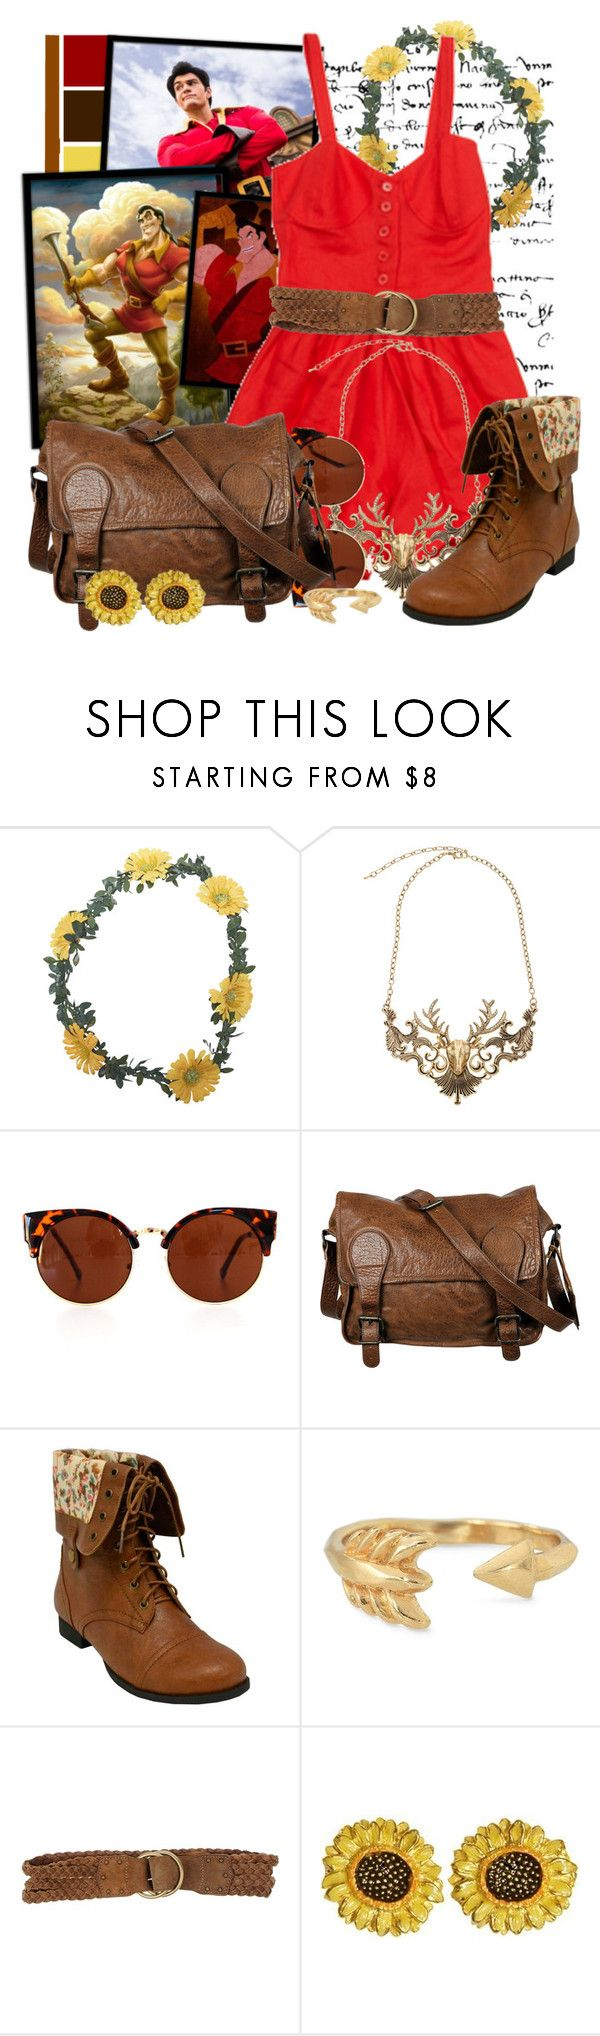 """Gaston"" by totallytrue ❤ liked on Polyvore featuring Wet Seal, Disney, Samantha Pleet, VIPARO, Stella & Dot and Polo Ralph Lauren"